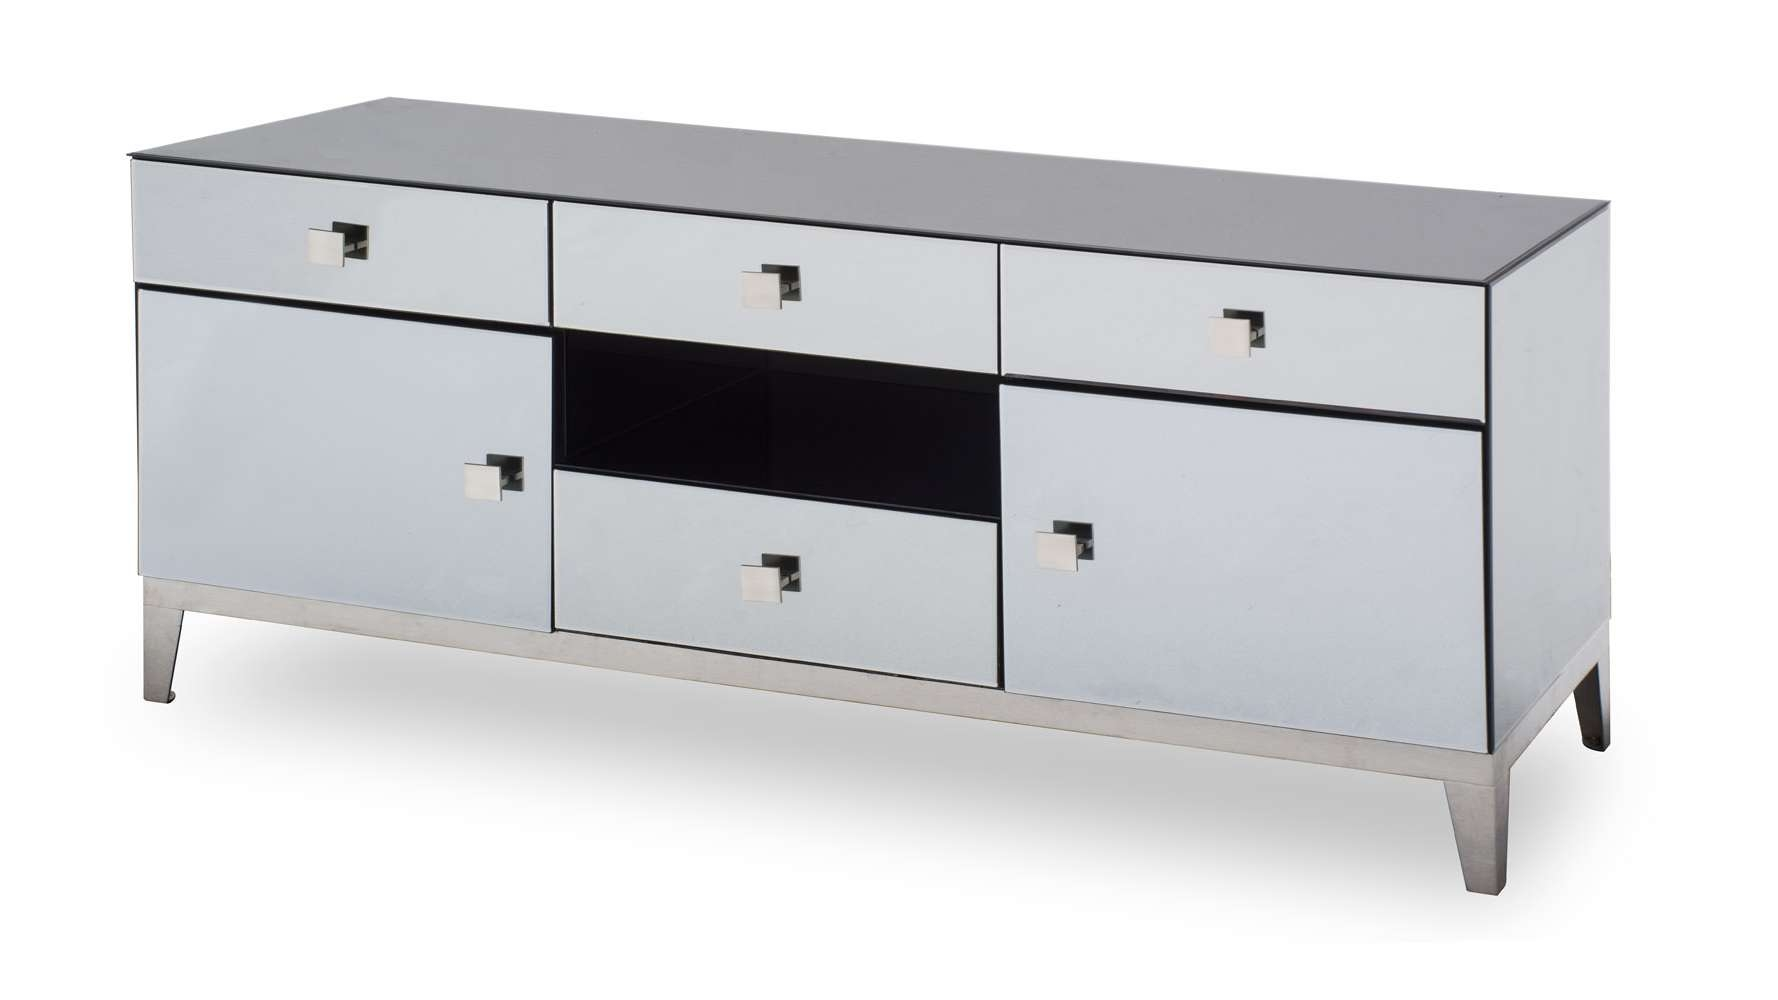 Modern Grey Mirrored Glass Berlin Tv Stand | Zuri Furniture With Regard To Mirrored Tv Cabinets Furniture (View 20 of 20)